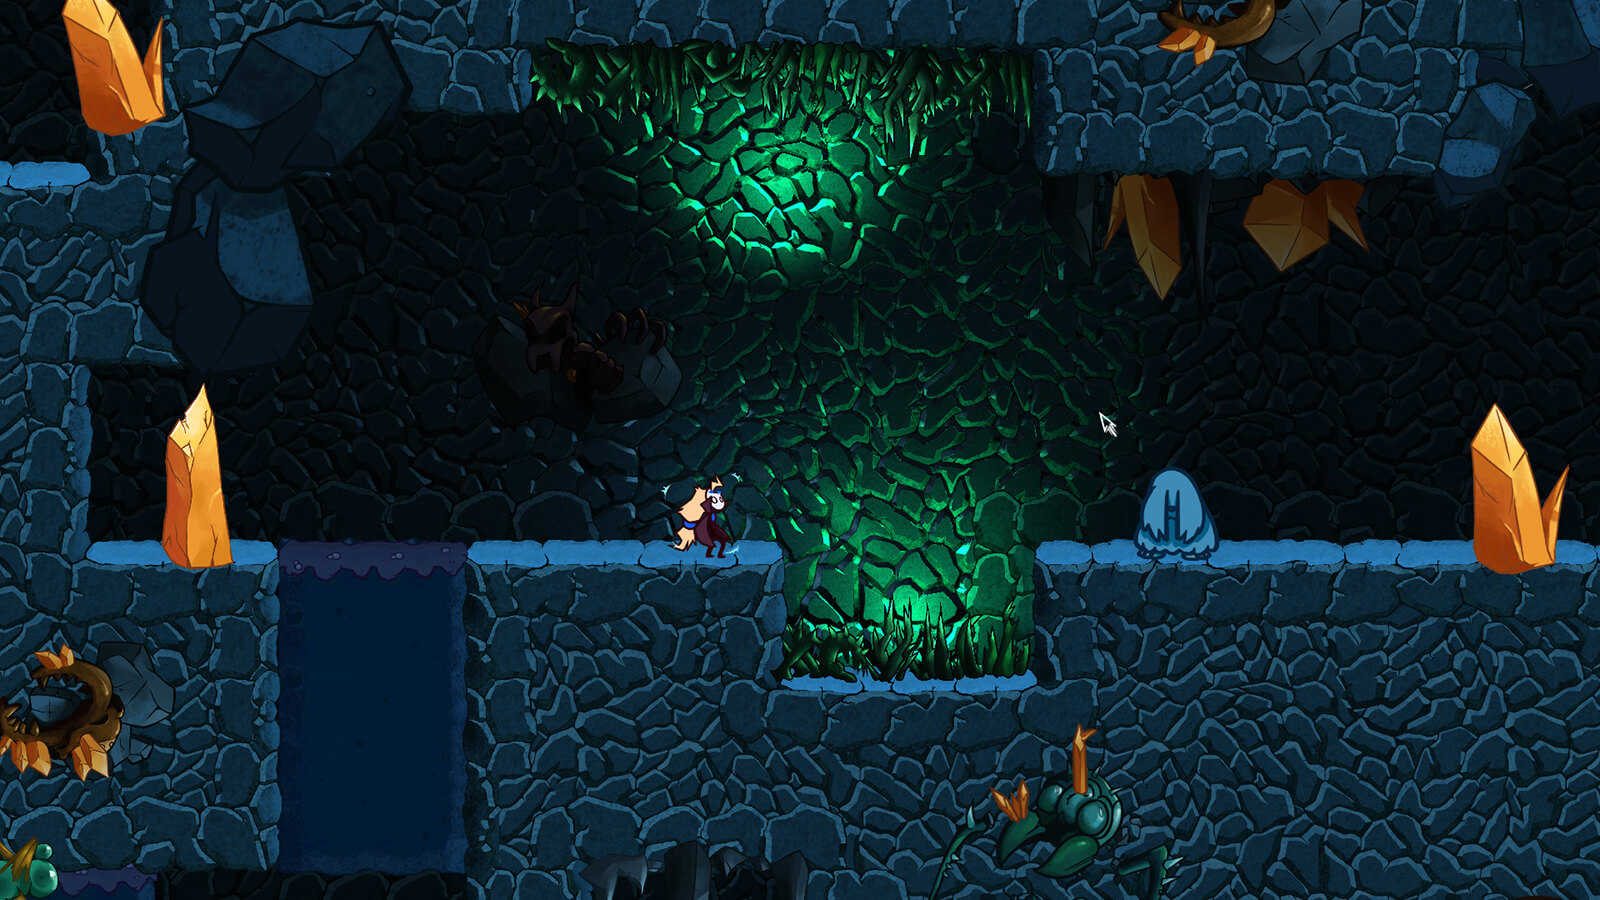 Screenshot featuring main character Jera in a cavern with blue walls